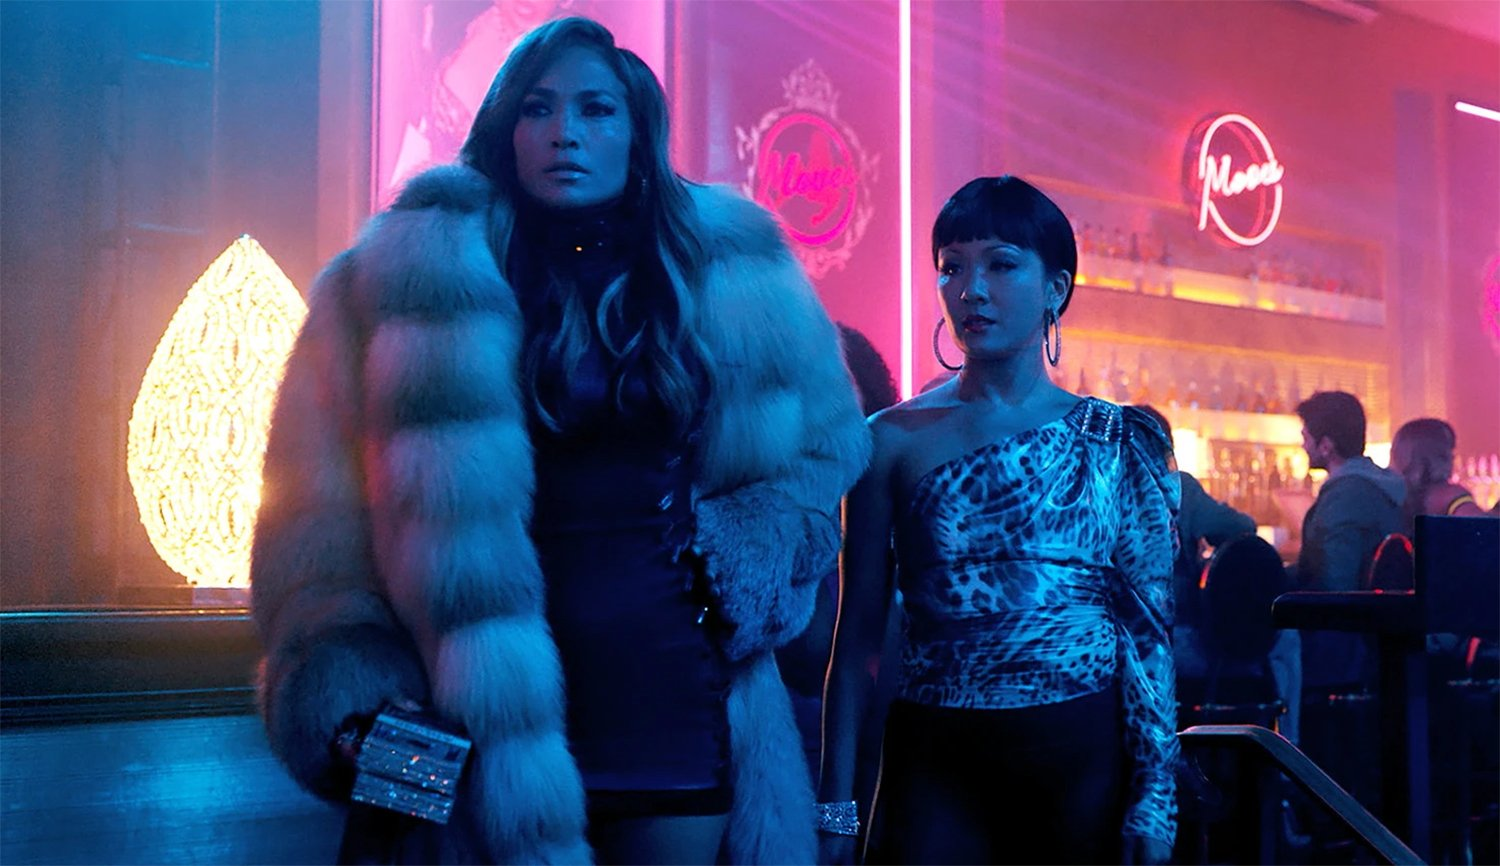 jennifer lopez in hustlers, best film of 2019